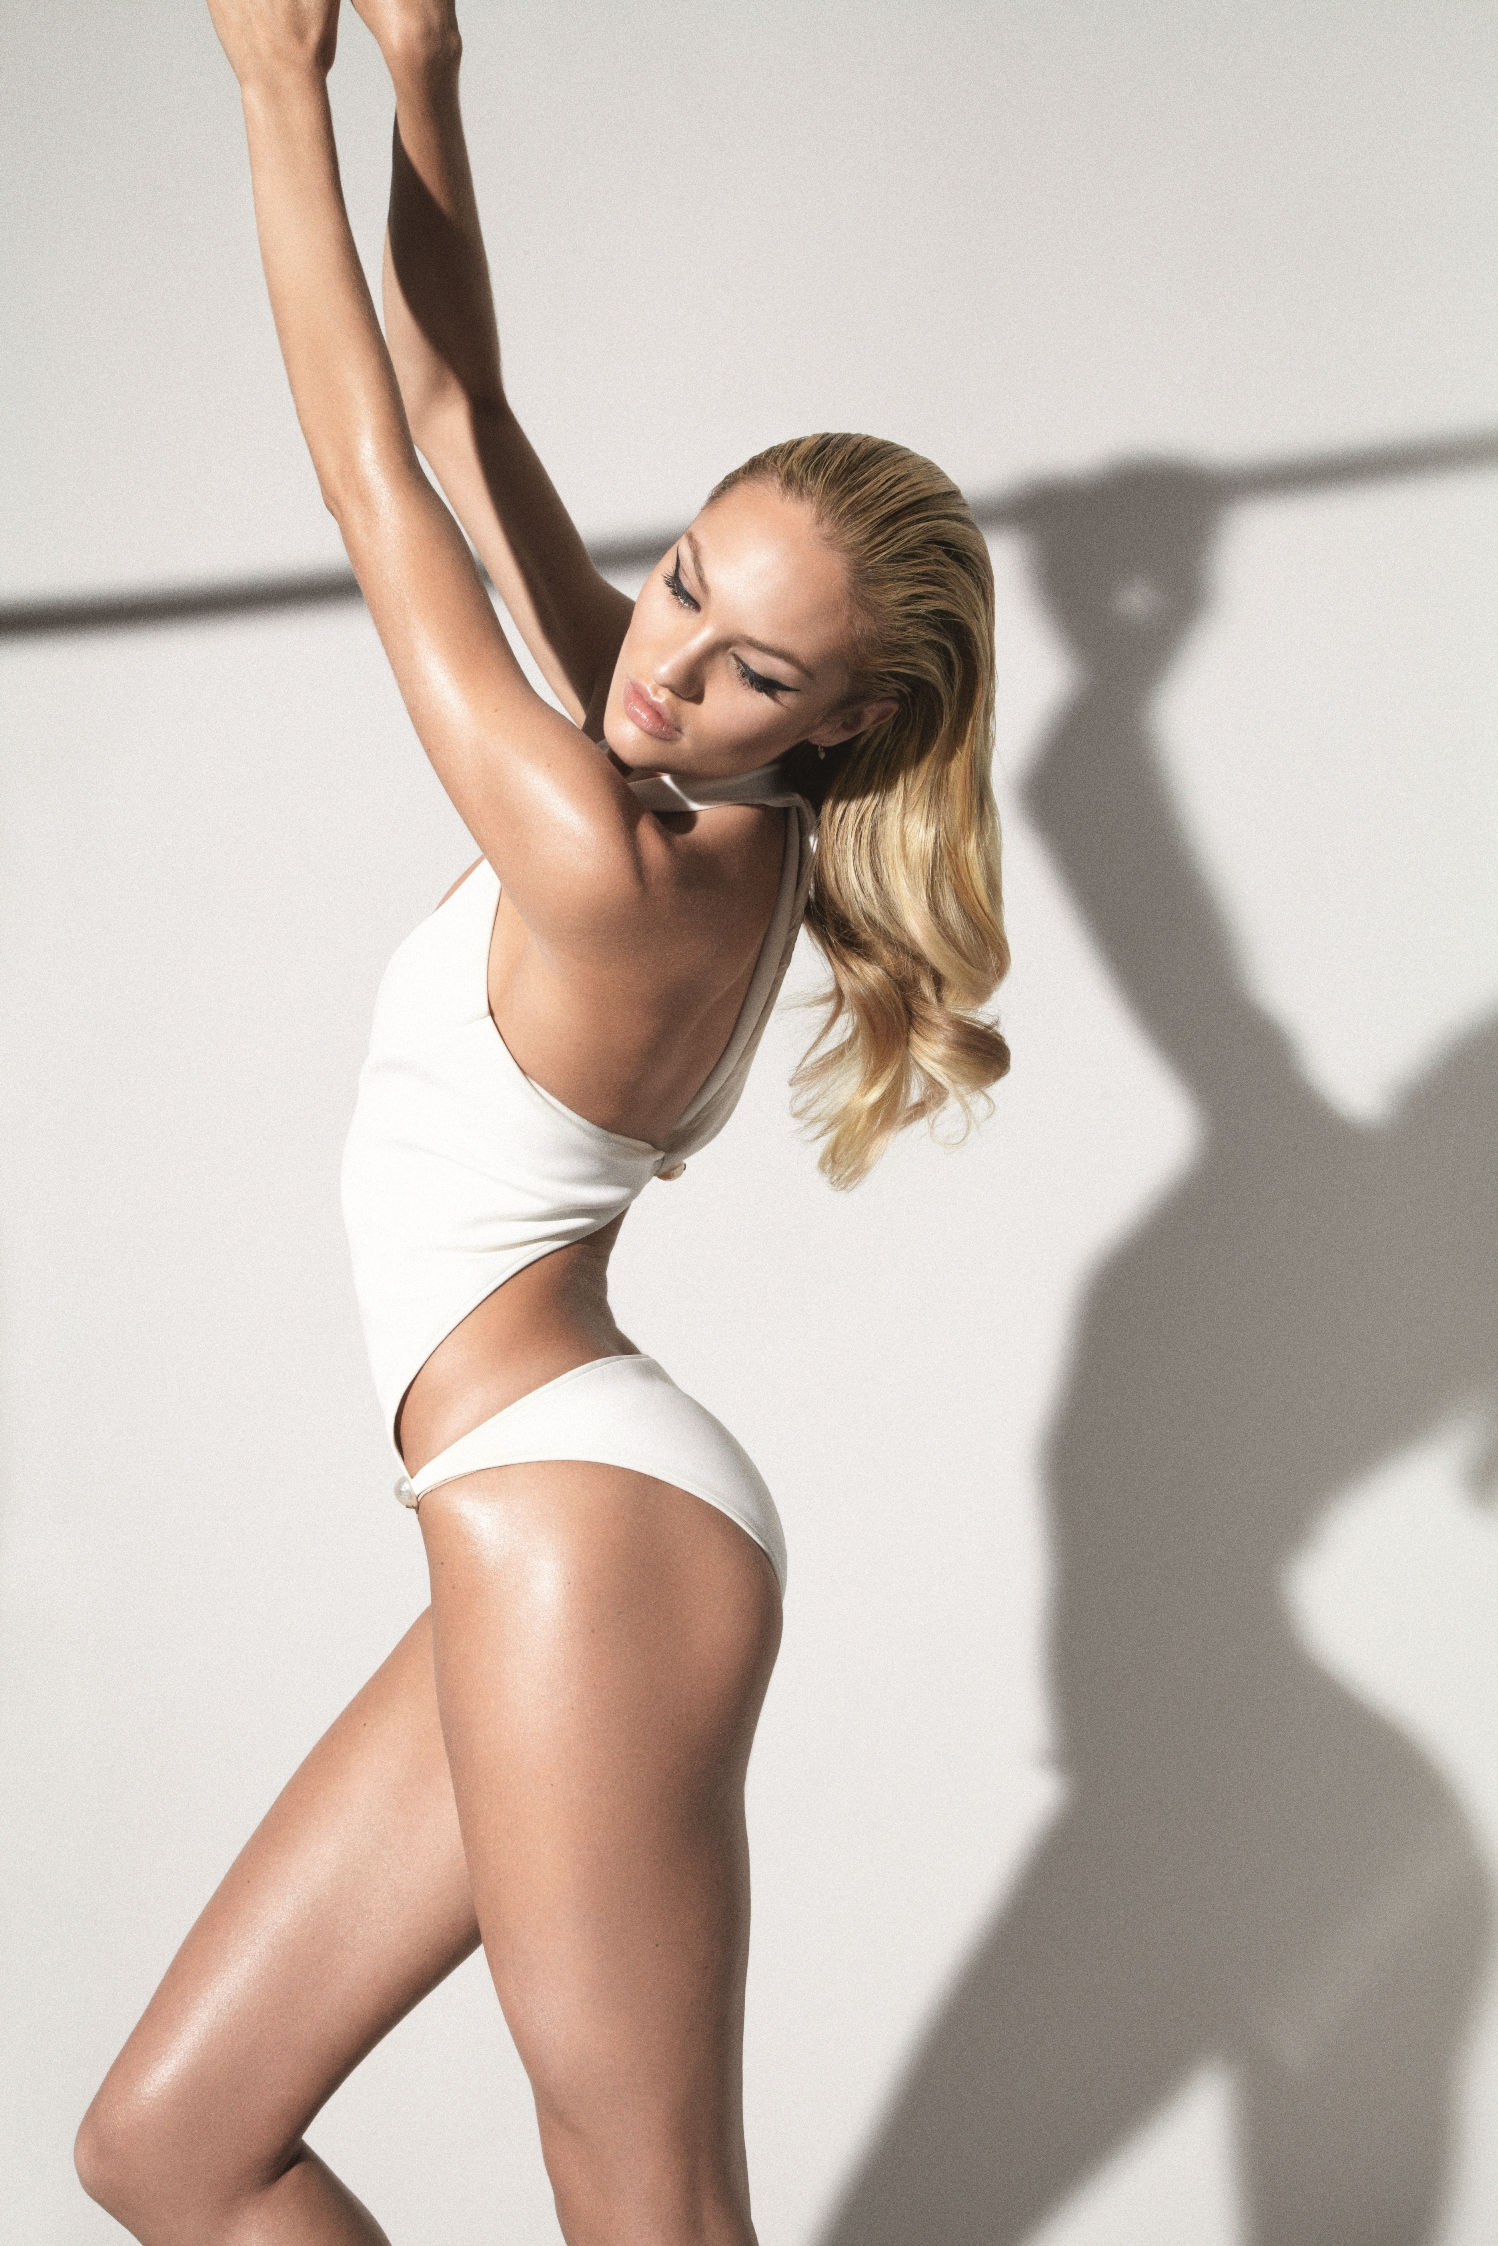 Candice Swanepoel 2012 : candice-swanepoel-collier-schorr-photoshoot-for-muse-magazine-13